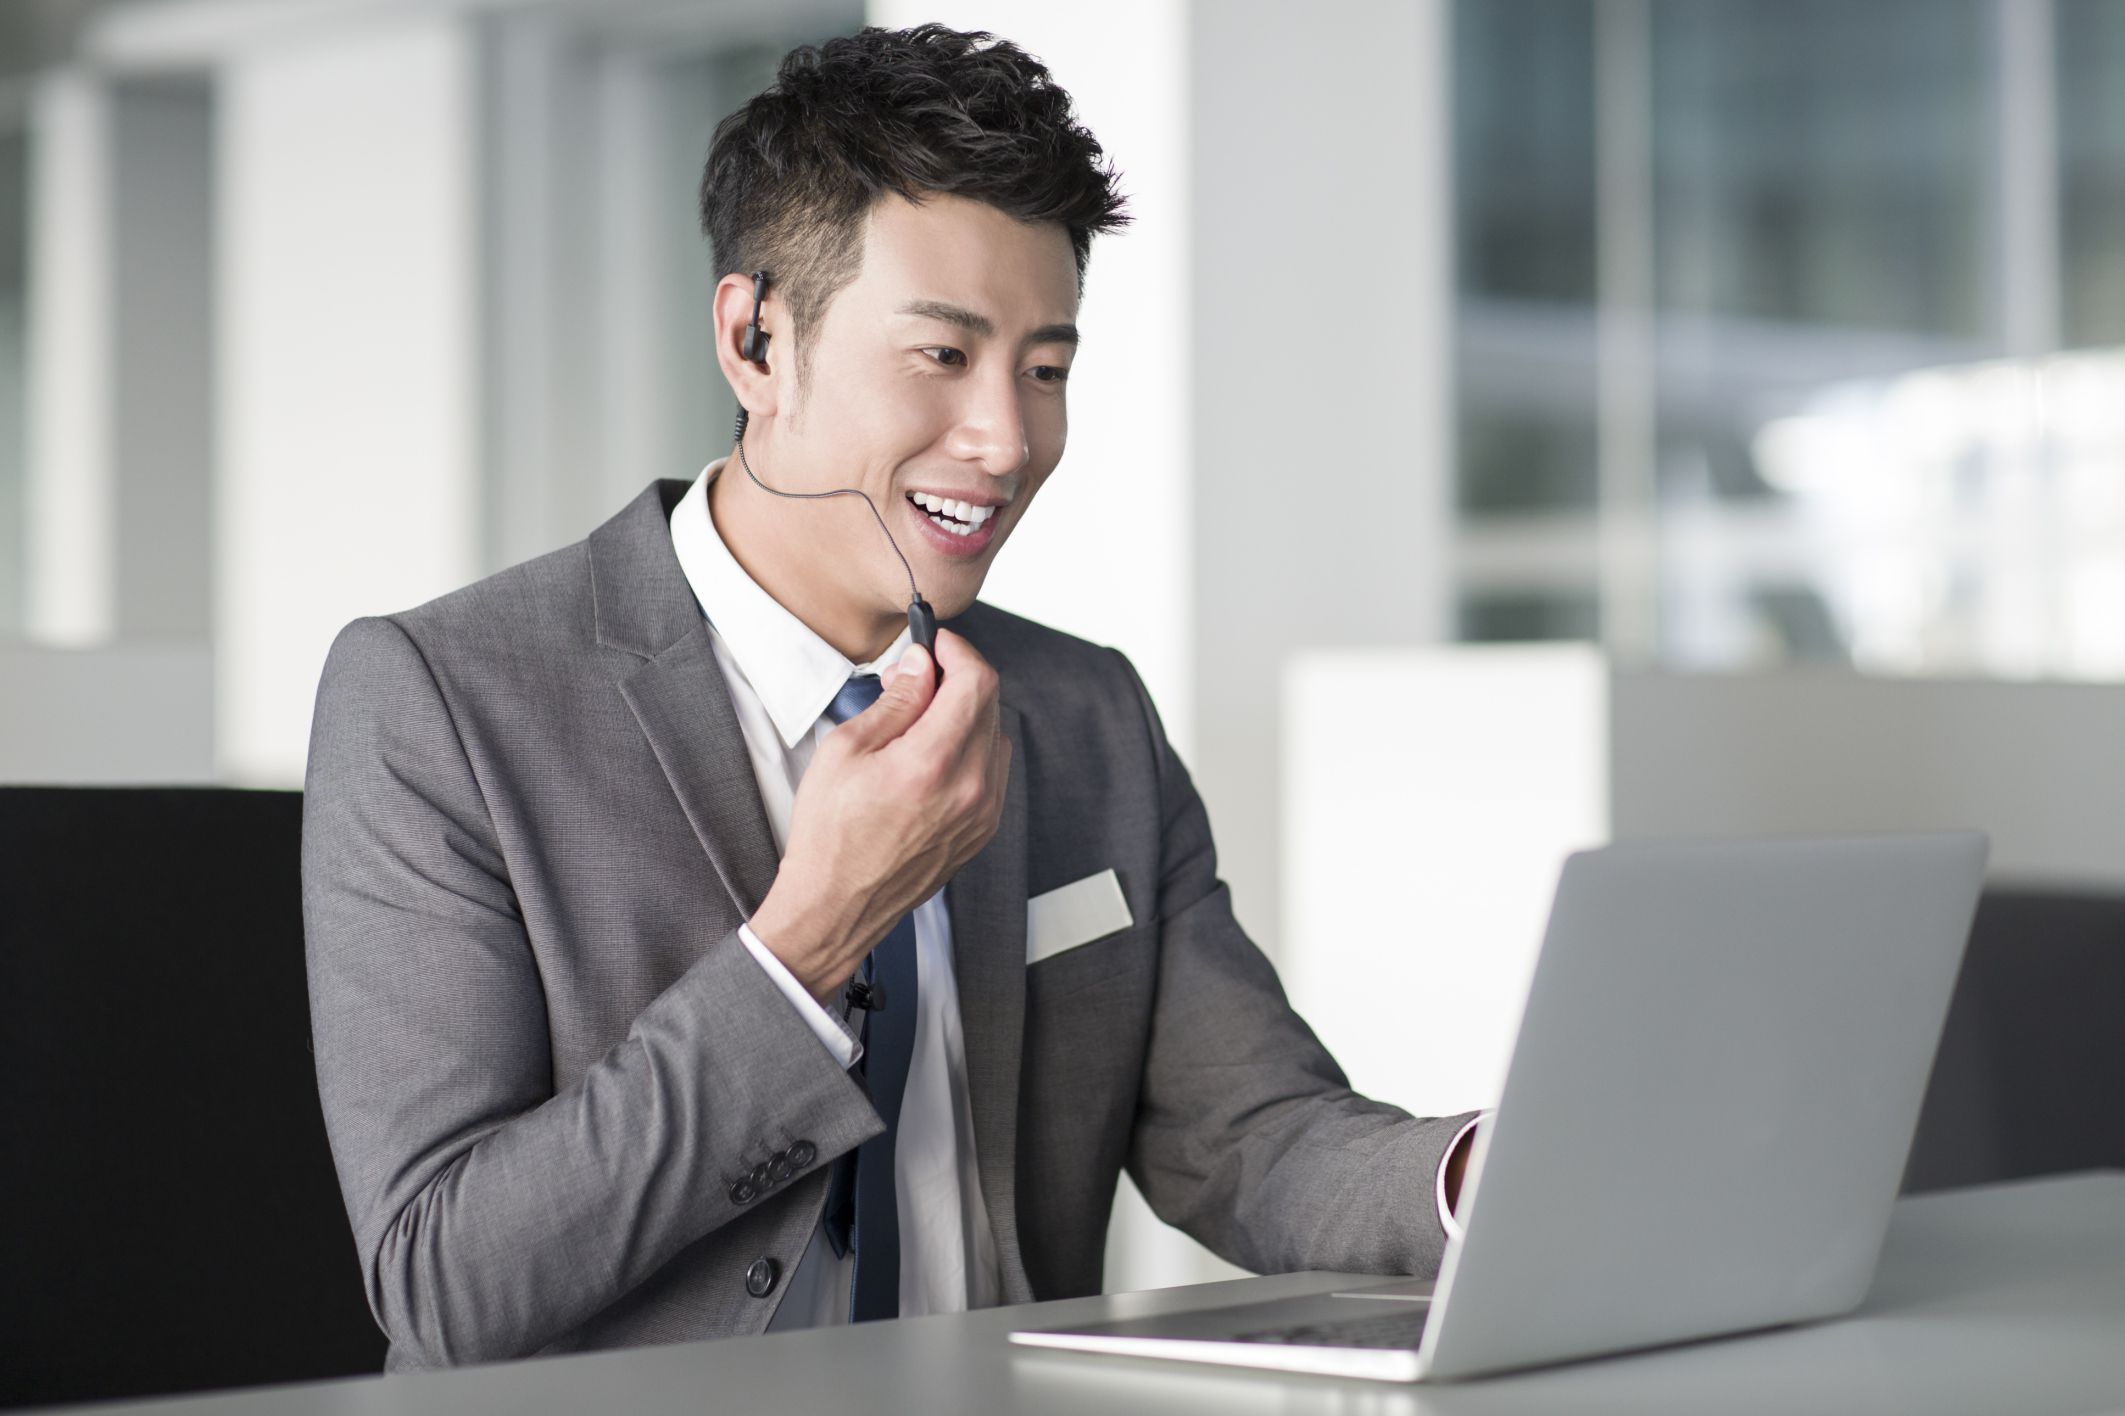 customer service jobs  options  job titles  descriptions